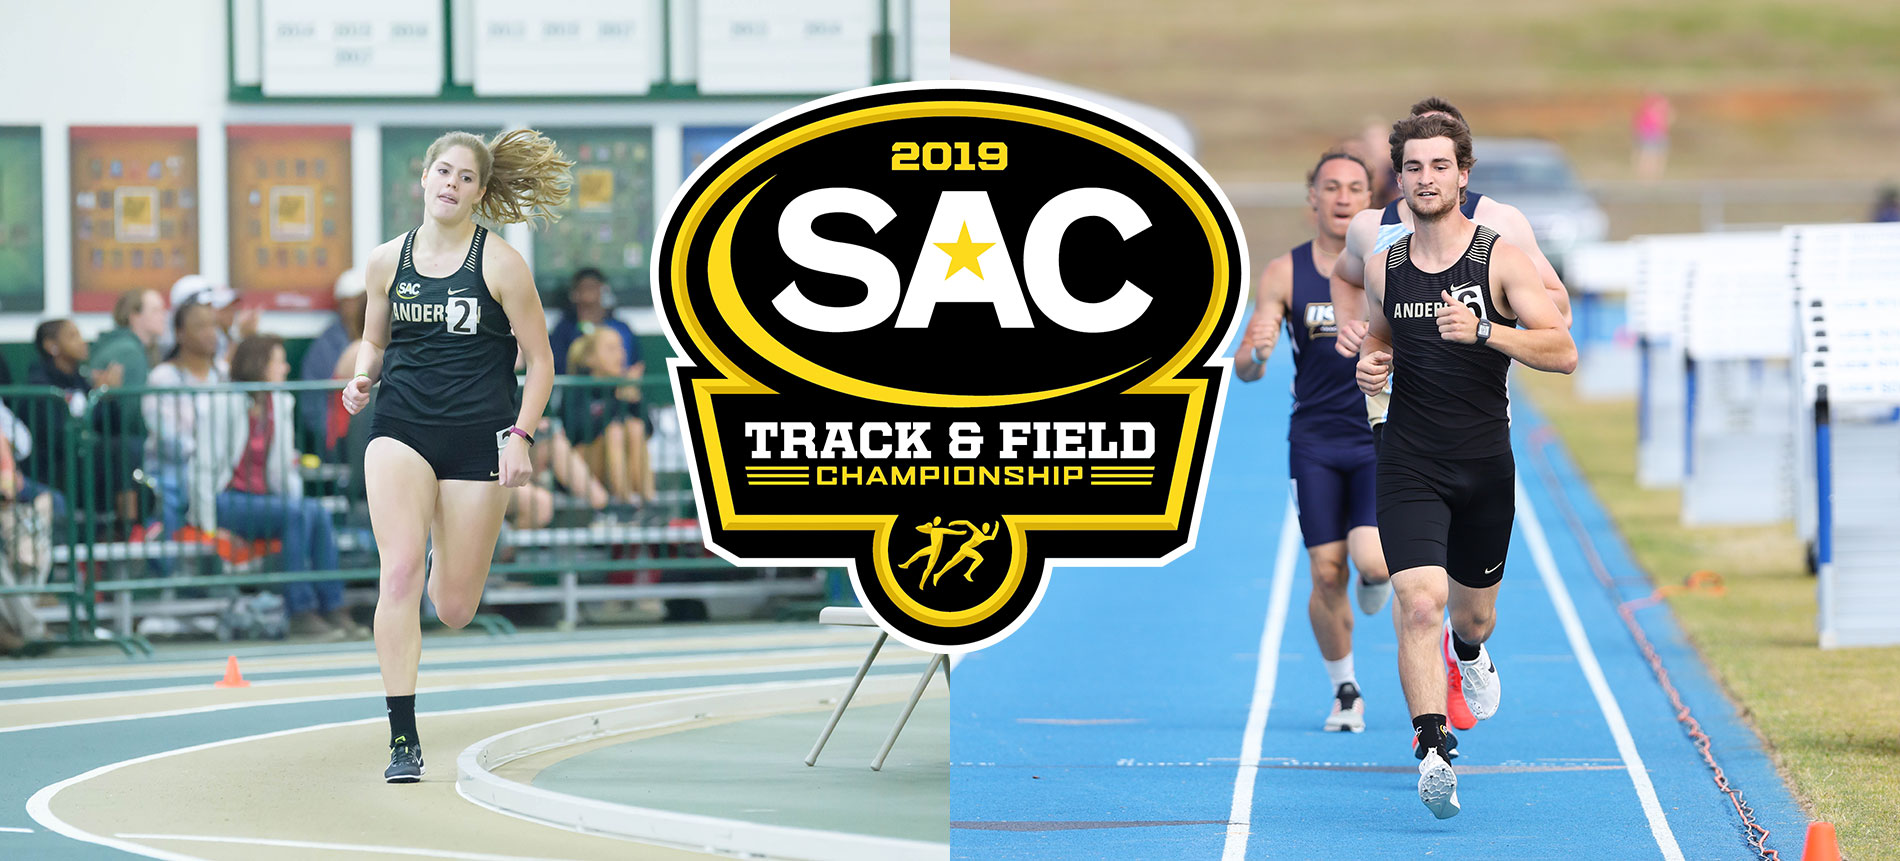 Women's Track and Field Fourth Following Opening Day of SAC Track and Field Championships; Trojan Men are Fifth